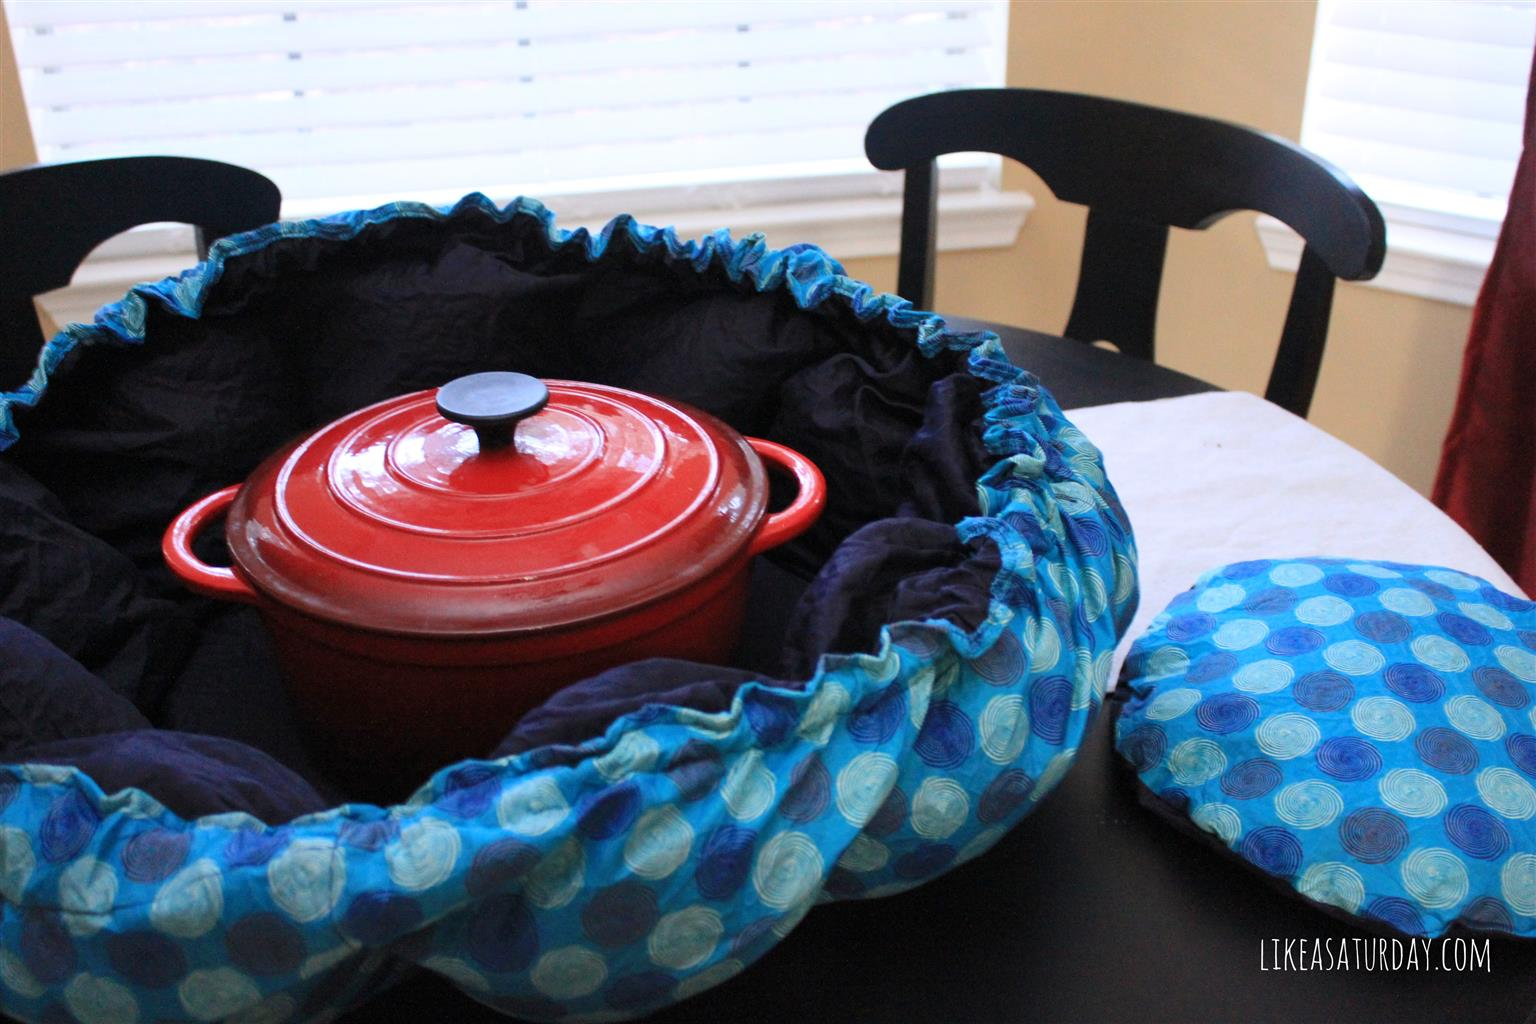 Wonderbag (NON ELECTRIC SLOW COOKER)